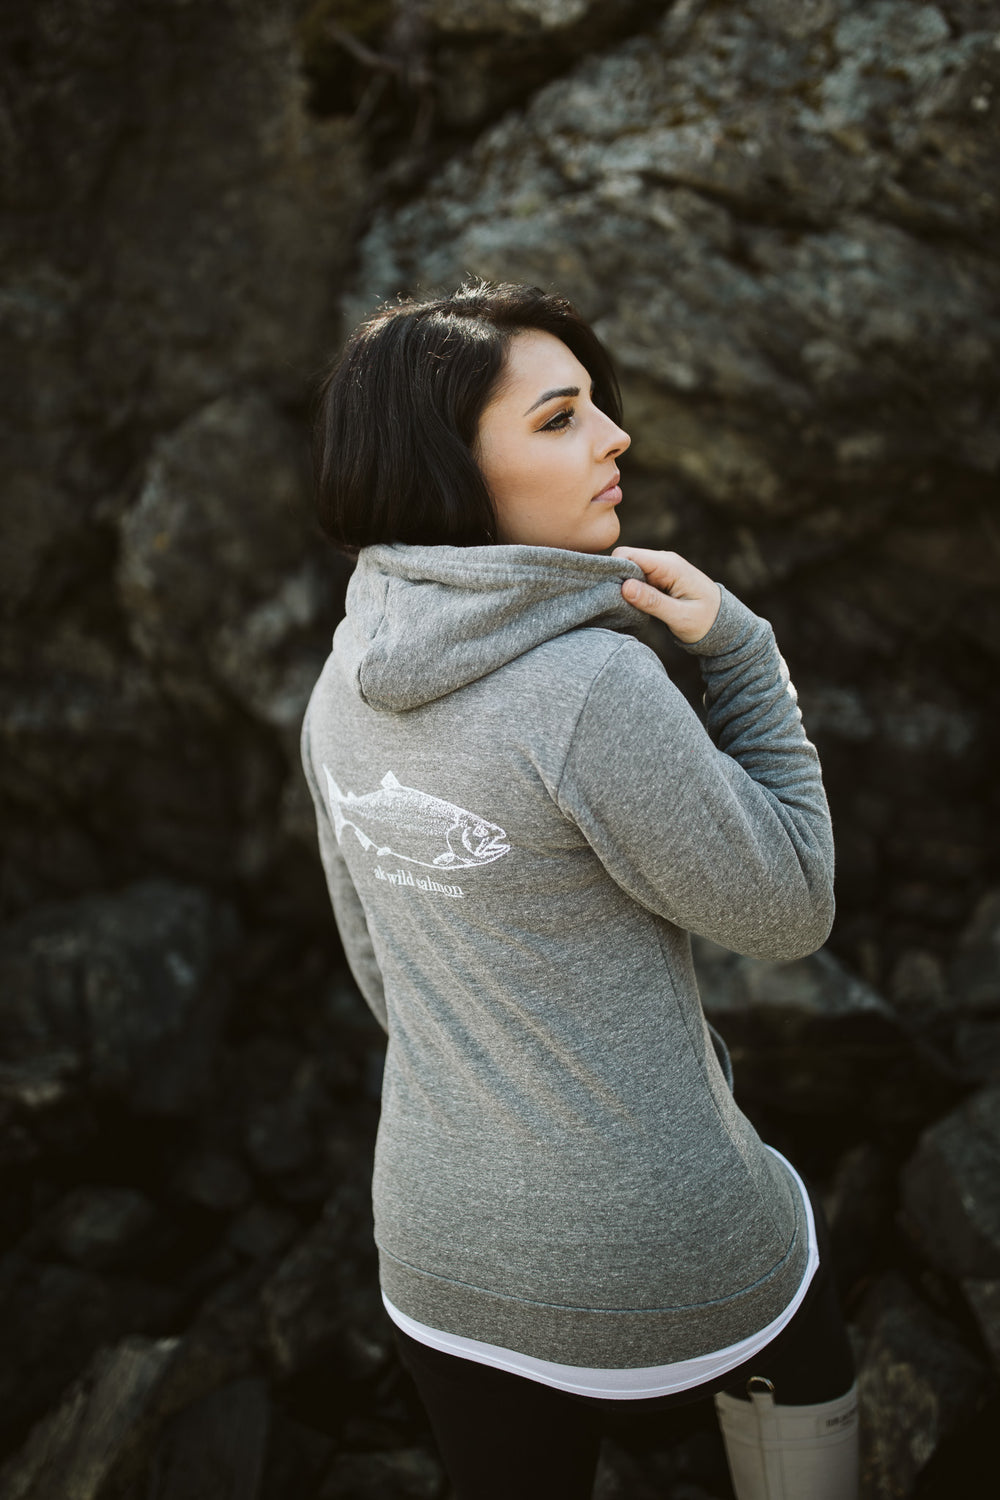 Storm AK Wild Salmon Co. Triblend Zipped Hoody $65.00